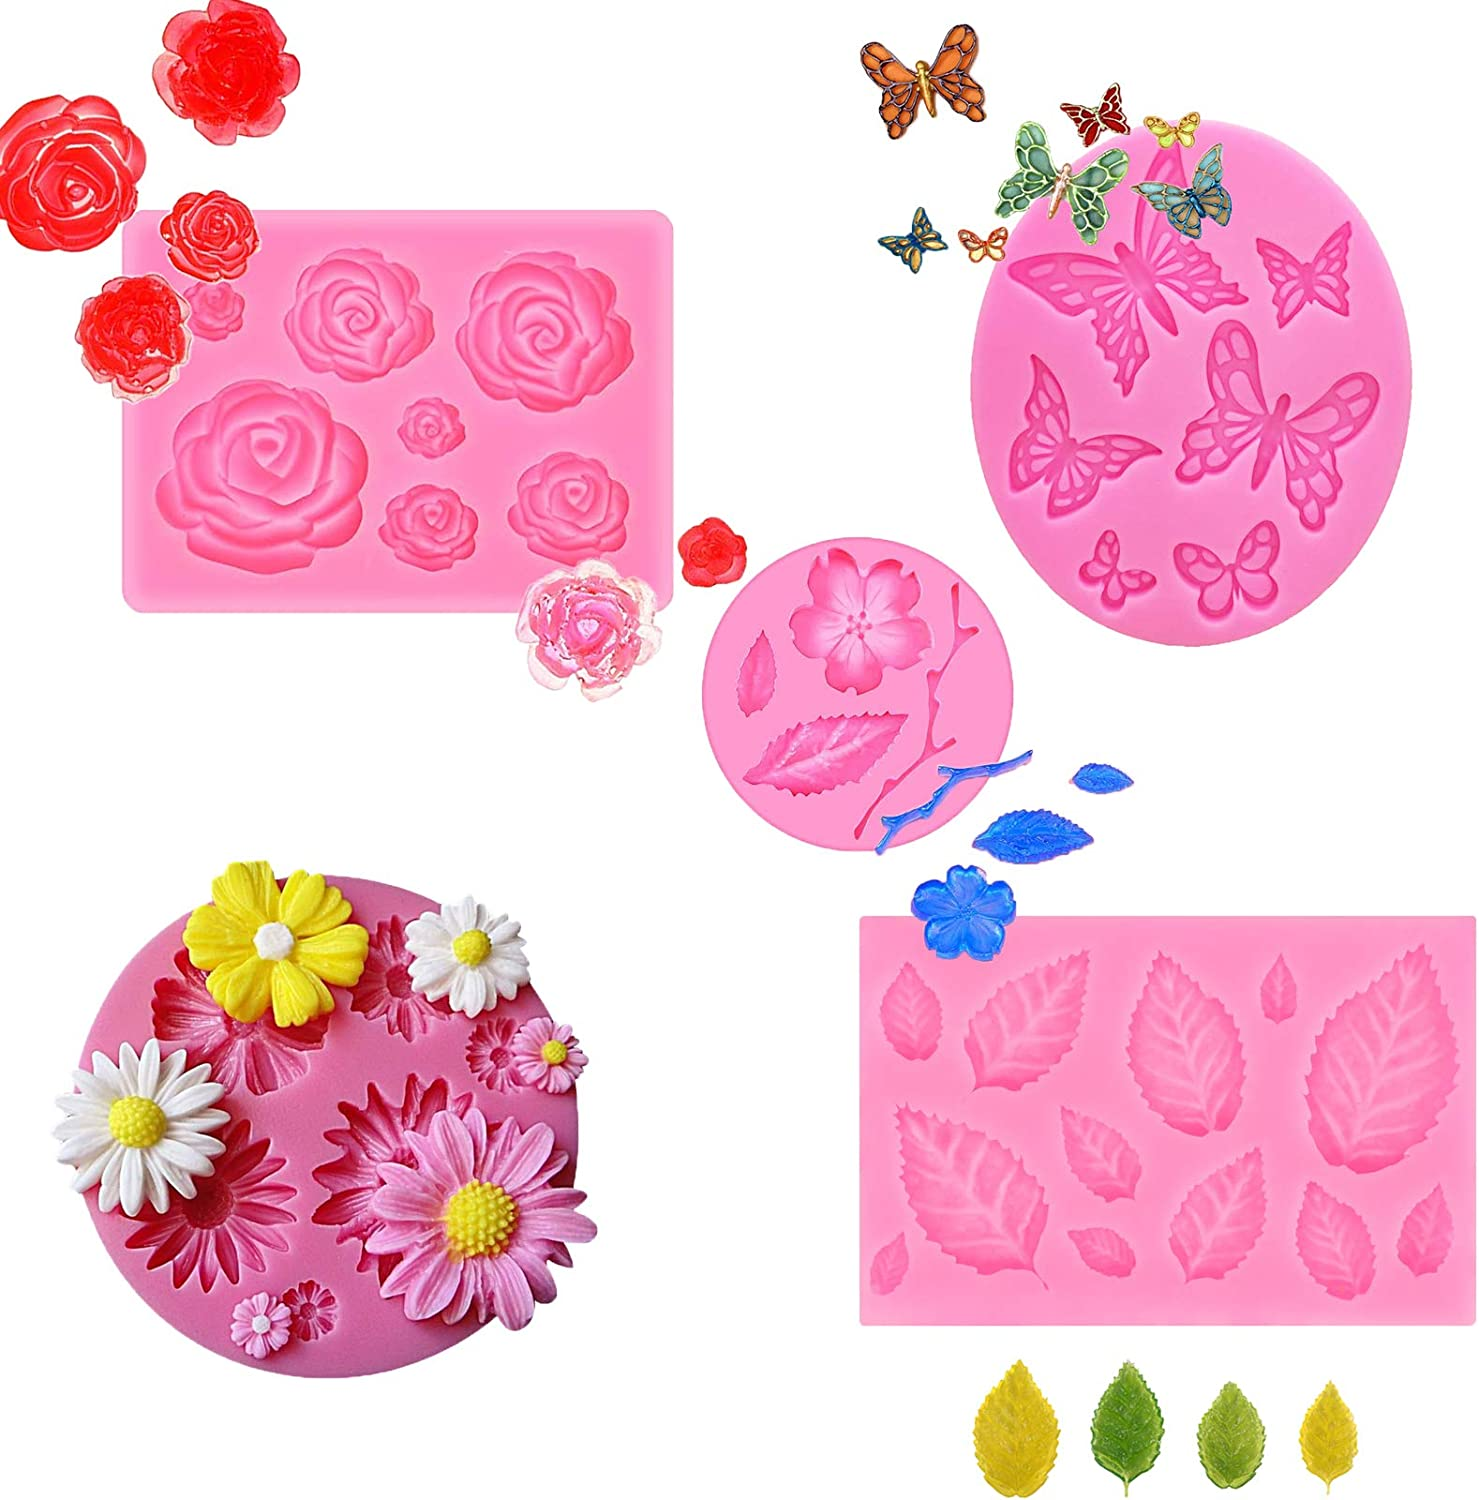 5 Pack Silicone Fondant Molds, Butterfly, Rose Flower and Small Flower, Food Grade Reusable Ice Candy Molds for Making Chocolate Cake Decoration and Jelly Polymer Clay Soap Crafting Projects